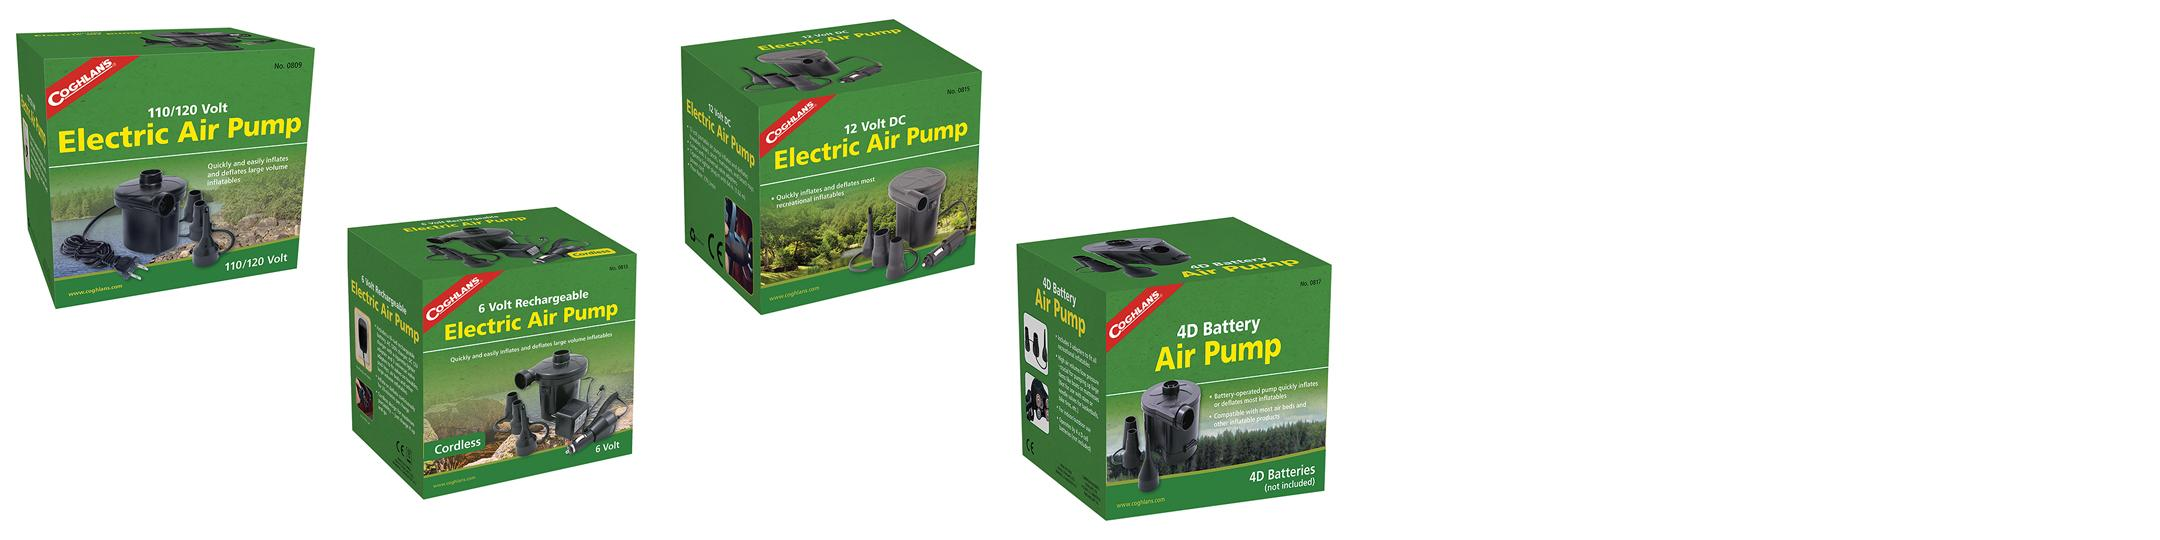 Amazon coghlans electric air pump 110120 volt coghlans from the manufacturer sciox Choice Image